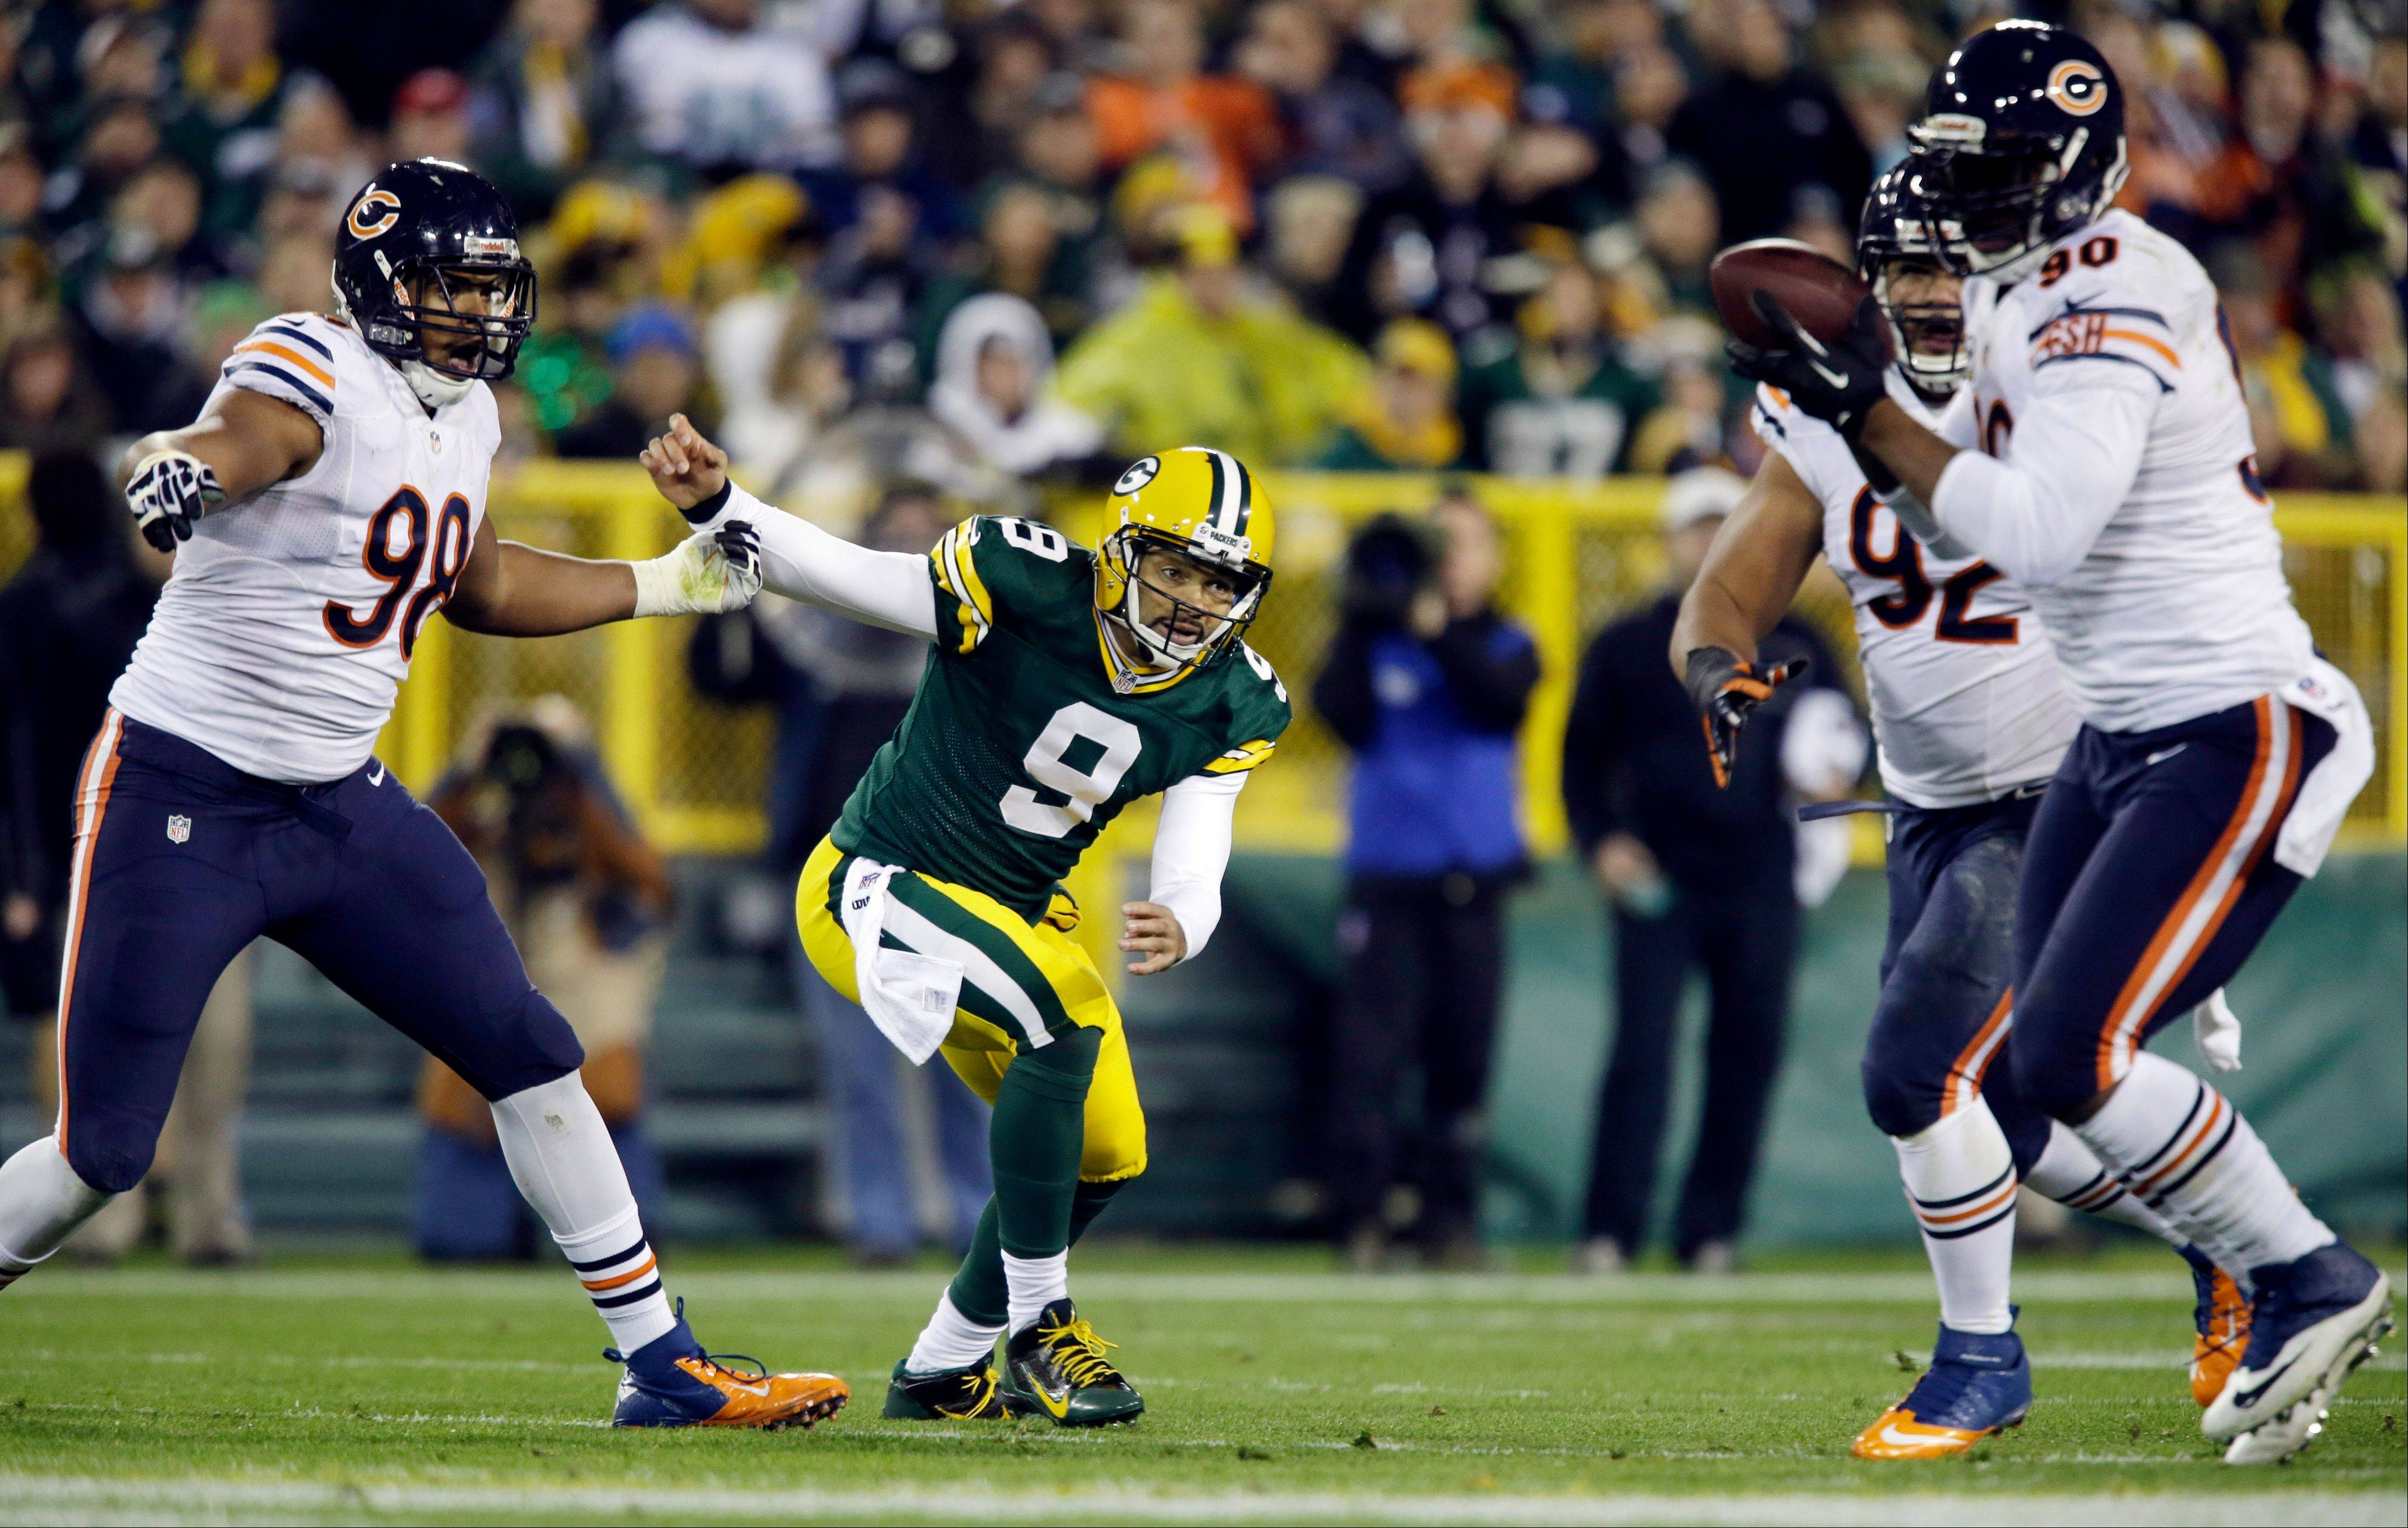 Green Bay Packers quarterback Seneca Wallace watches as Chicago Bears' Julius Peppers (90) intercepts a pass during the first half .